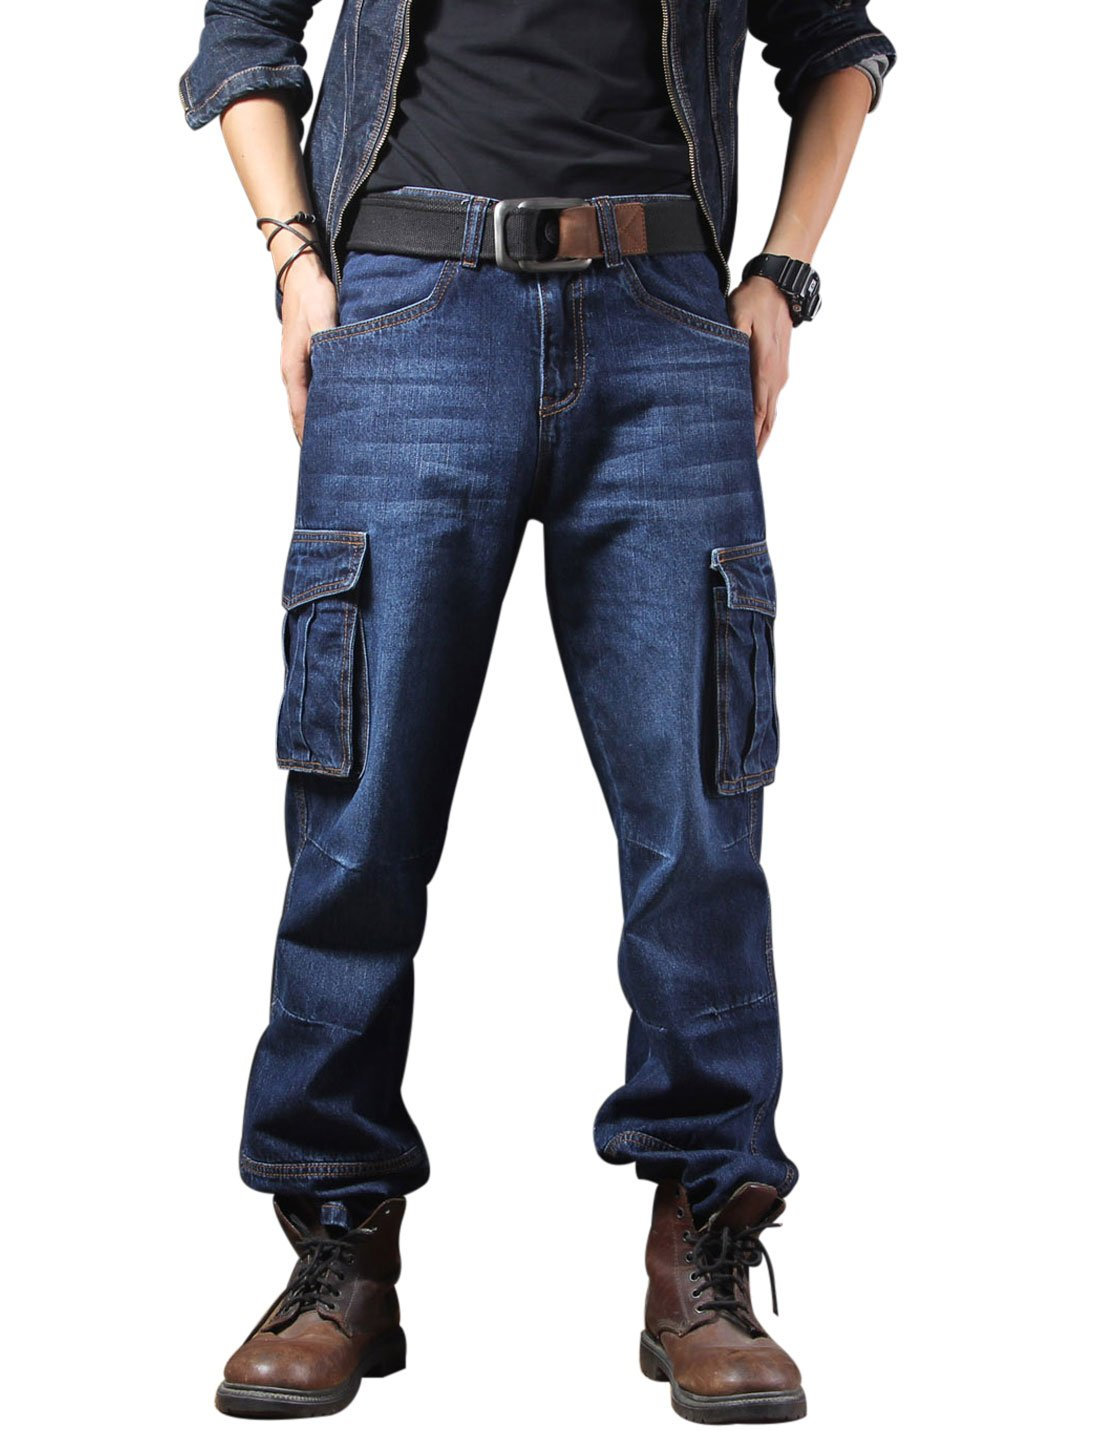 Yeokou Men's Casual Loose Hip Hop Denim Work Pants Jeans with Cargo Pockets Cargo Jeans (34, Dark Blue)